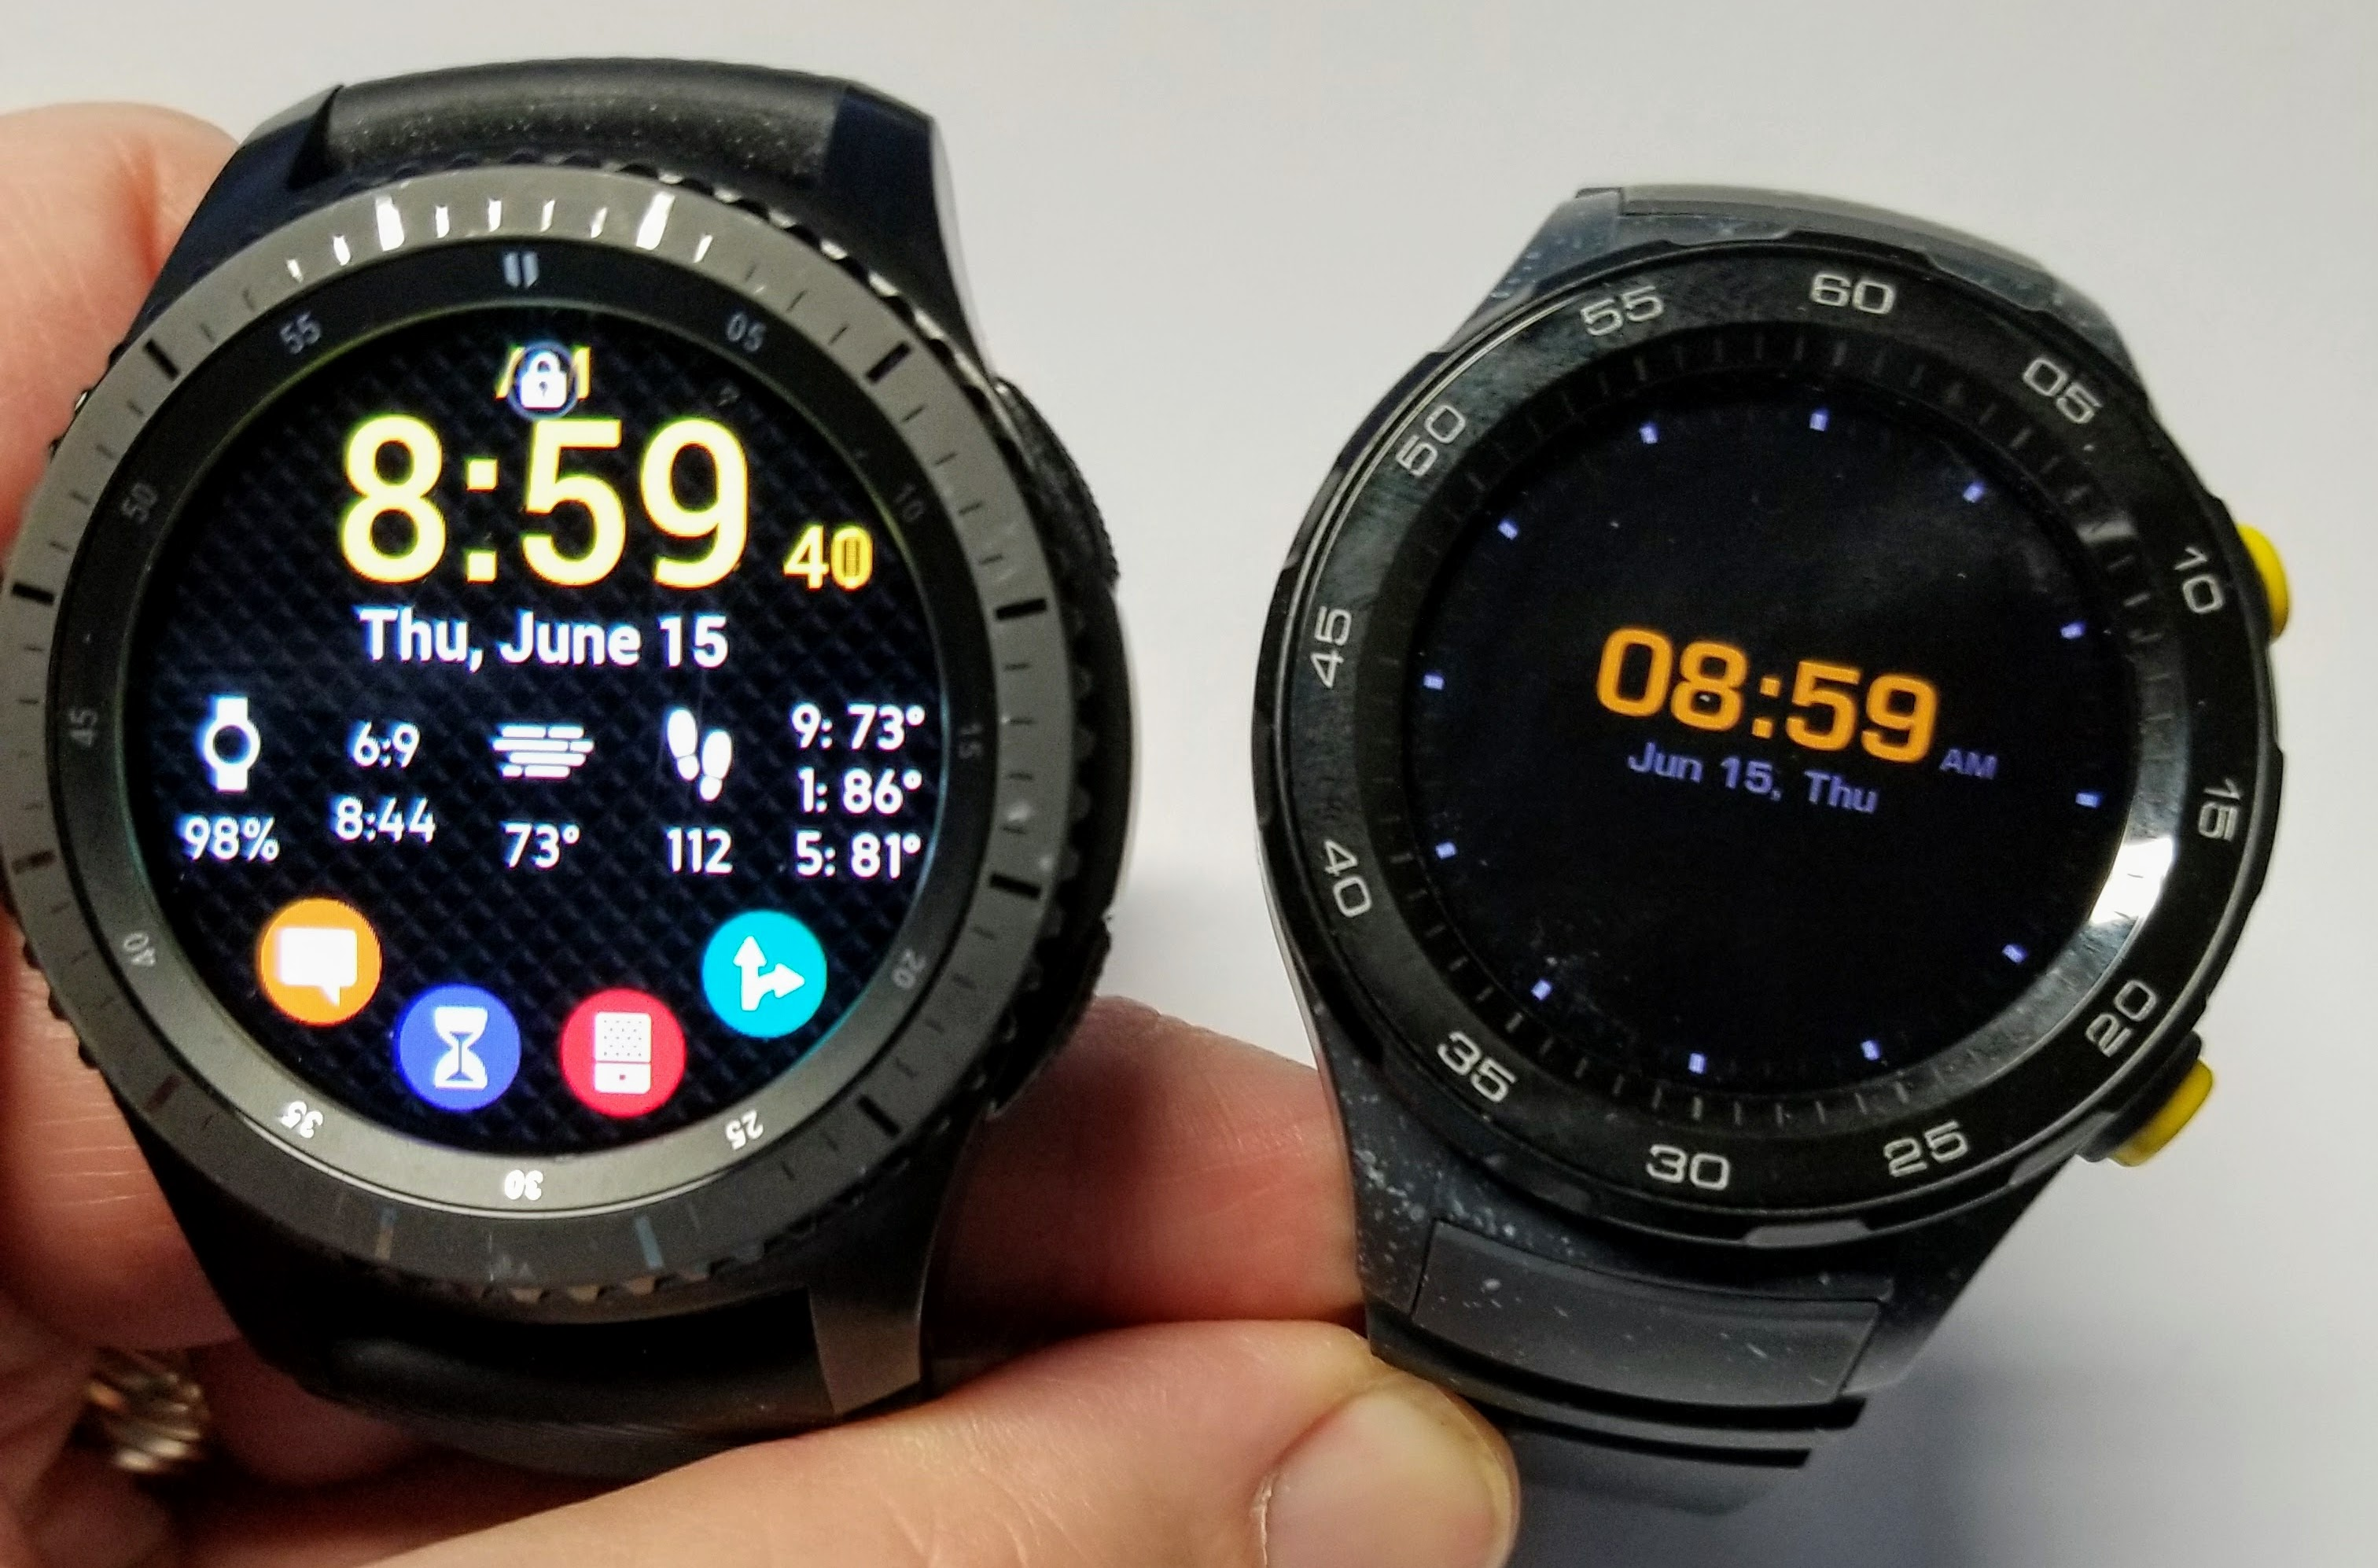 huawei watch 2 and samsung gear s3